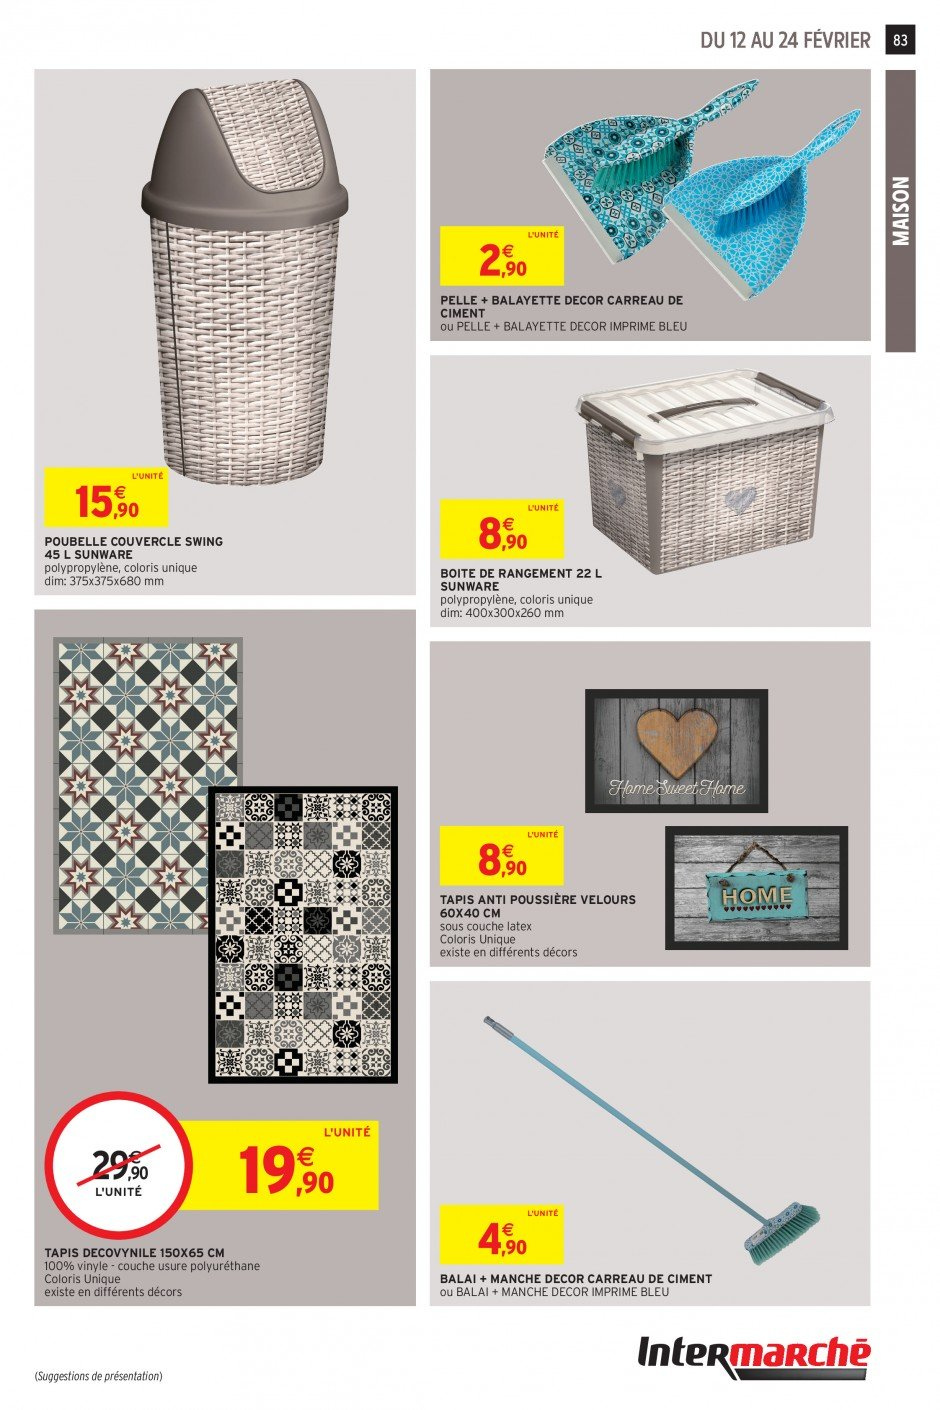 Catalogue Intermarché - 12.02.2019 - 24.02.2019. Page 81.